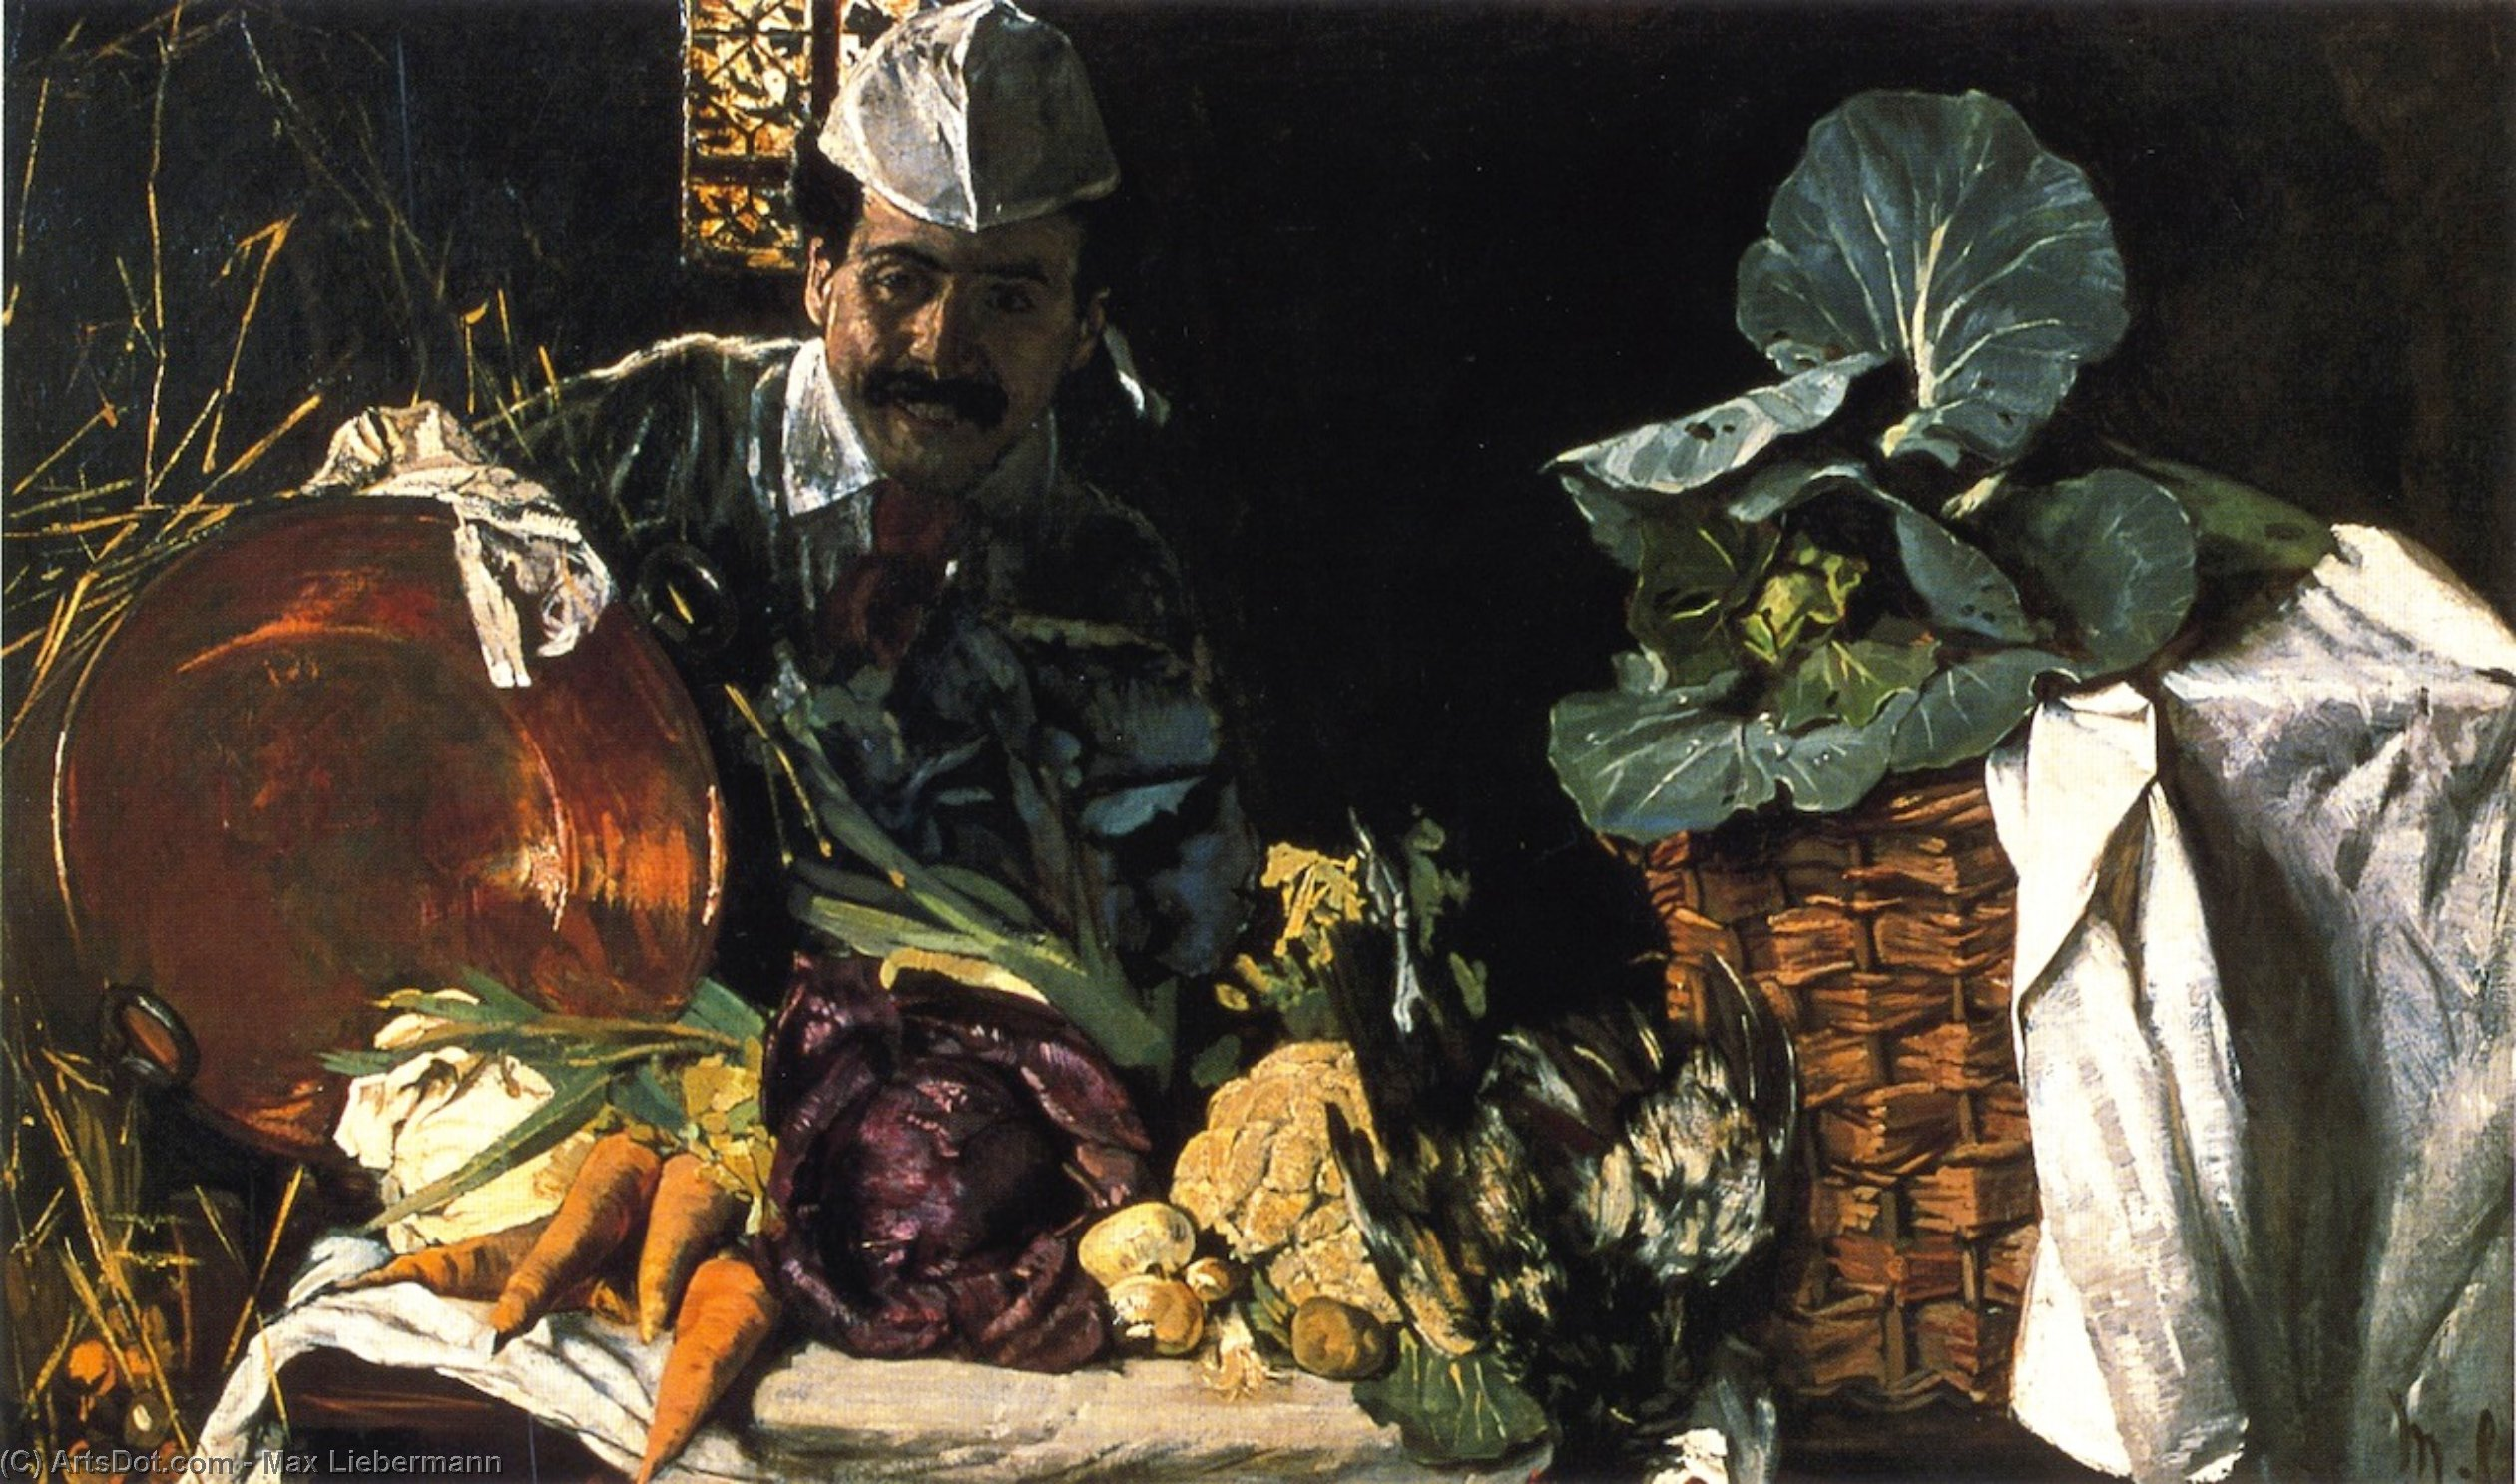 Wikioo.org - The Encyclopedia of Fine Arts - Painting, Artwork by Max Liebermann - Self Portrait with Kitchen Still LIfe